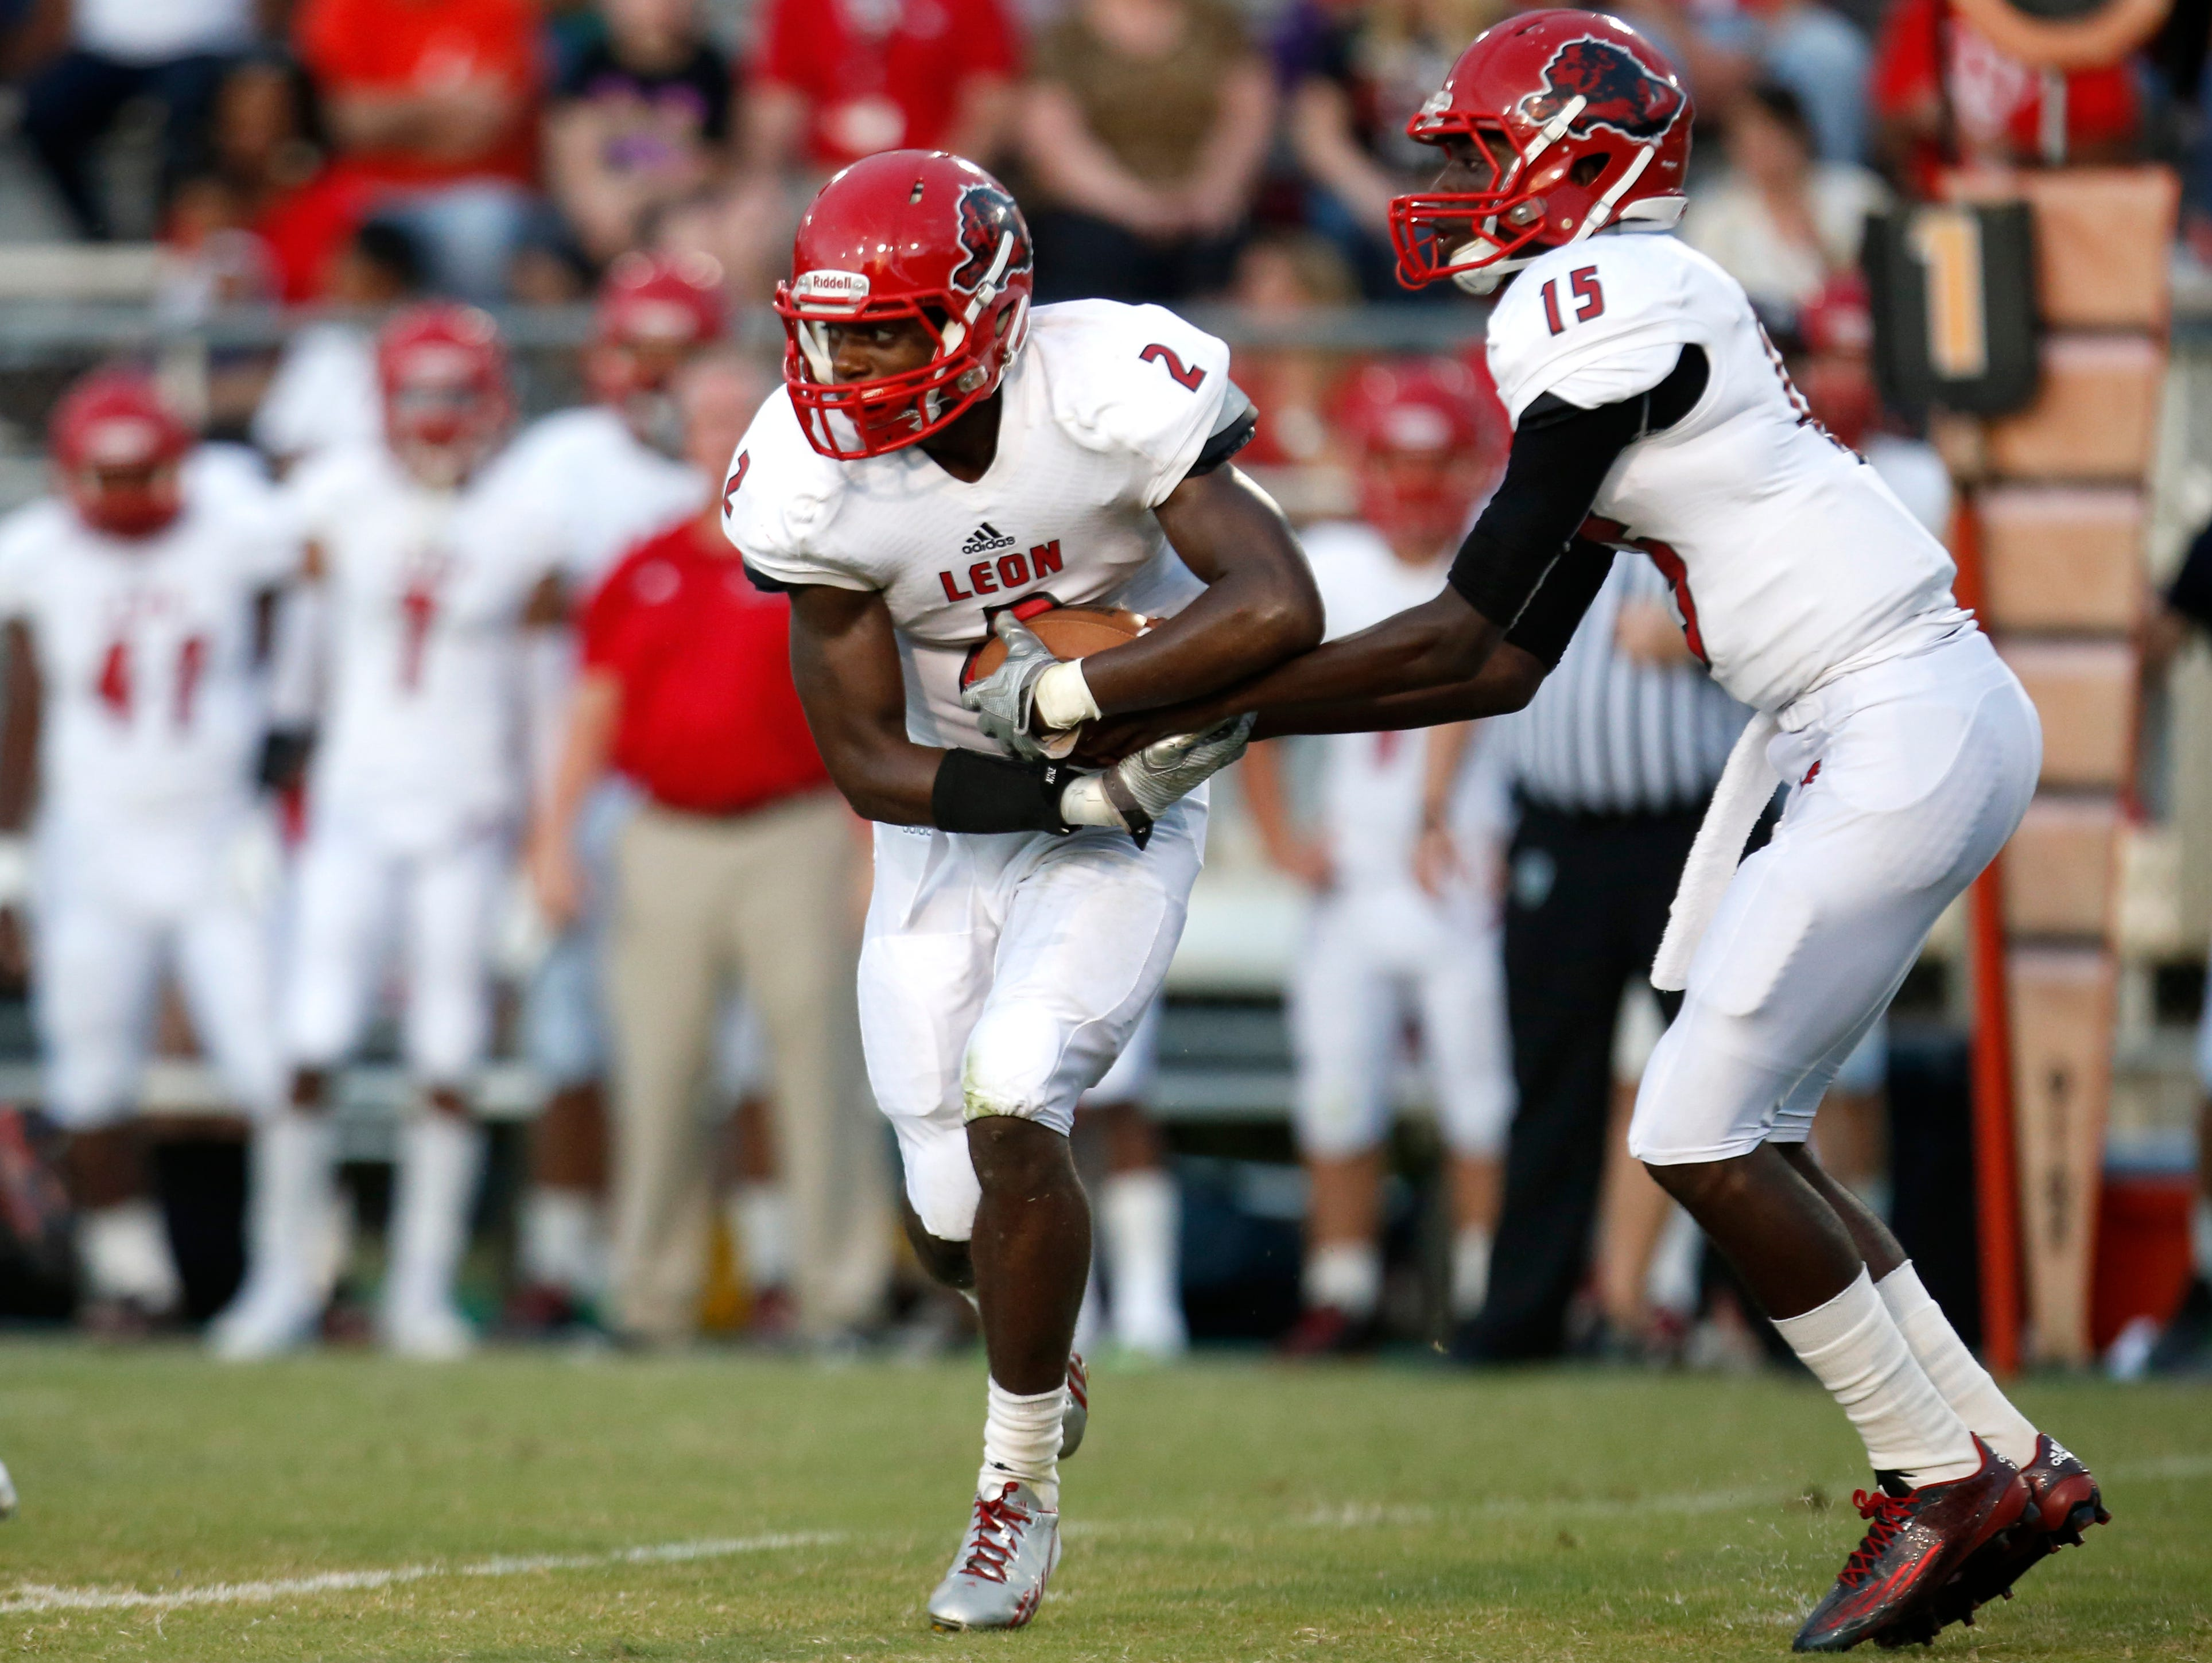 Leon quarterback Tyhran Glasco hands off to James Peterson against Godby at Cox Stadium on Friday.